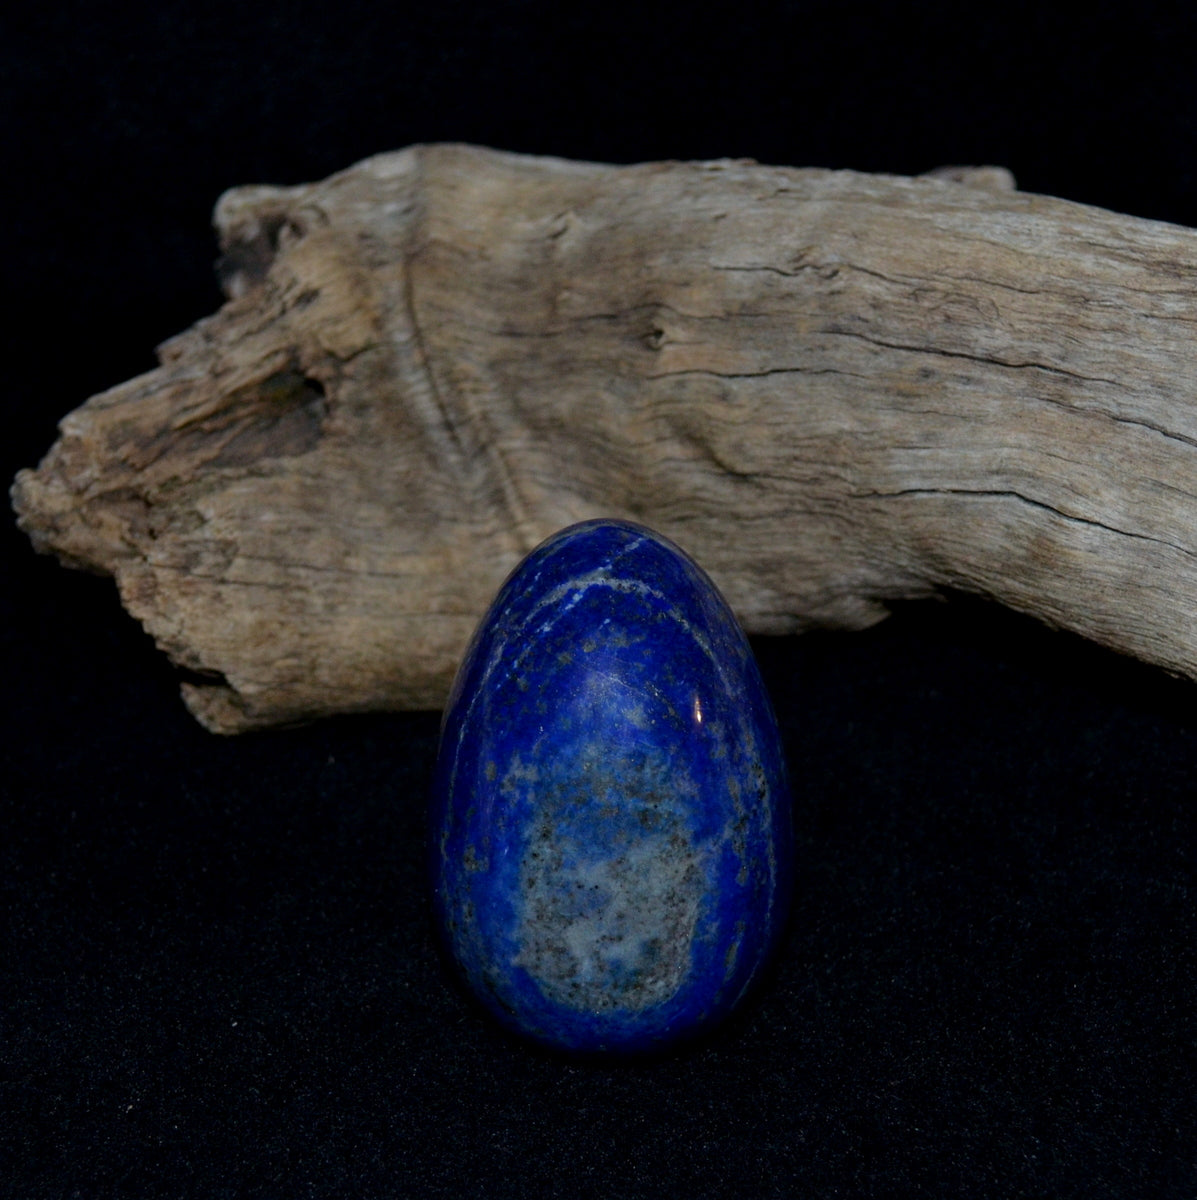 Lapis Lazuli Egg Afghanistan - Intuition Visions Past Lives Knowing - Shop now at Illiom Crystals - We have Afterpay